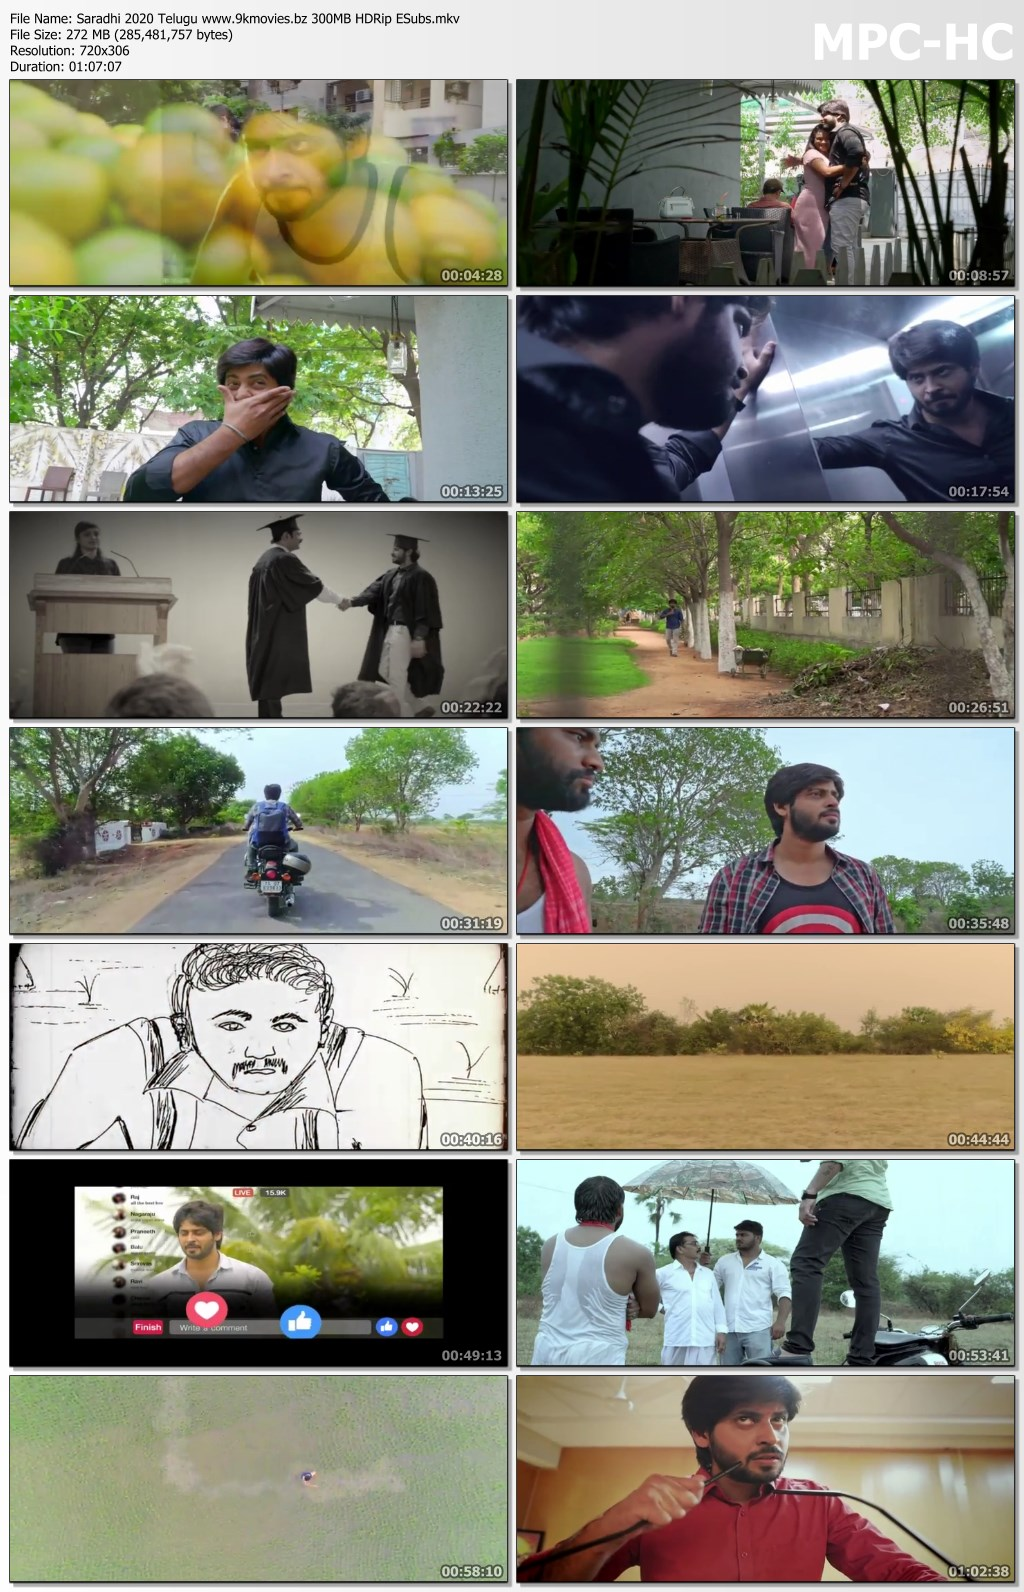 Saradhi bingtorrent Screen shots